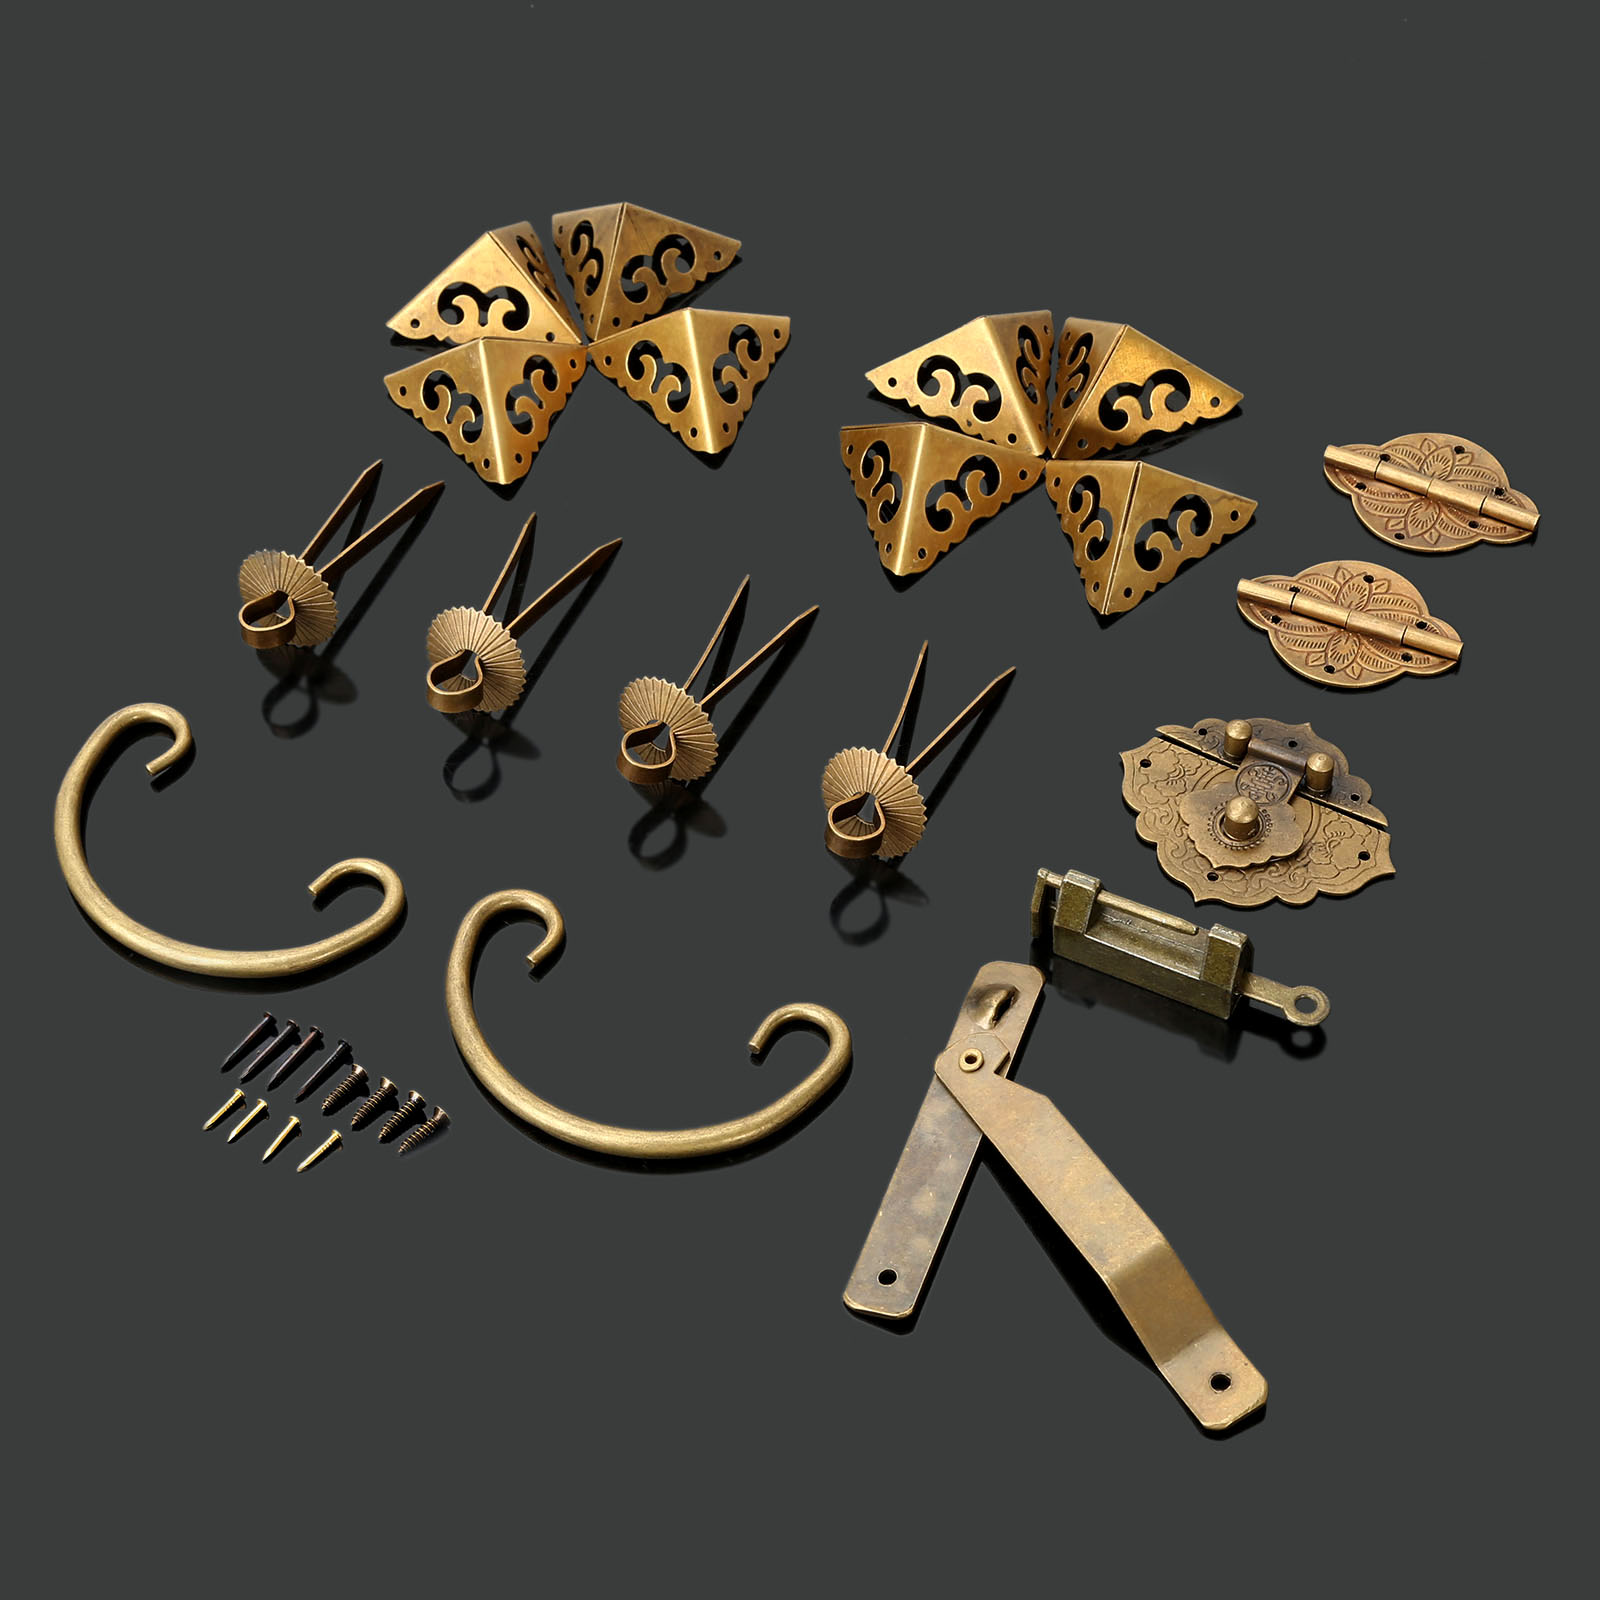 Brass Hardware Set Furniture Knobs and Handles +Hinges +Latch +Lock+Pin+Corner Protector Antique Jewelry Wood Box Decoration 4pcs antique brass jewelry chest wood box decorative feet leg corner brackets protector for cabinet furniture hardware